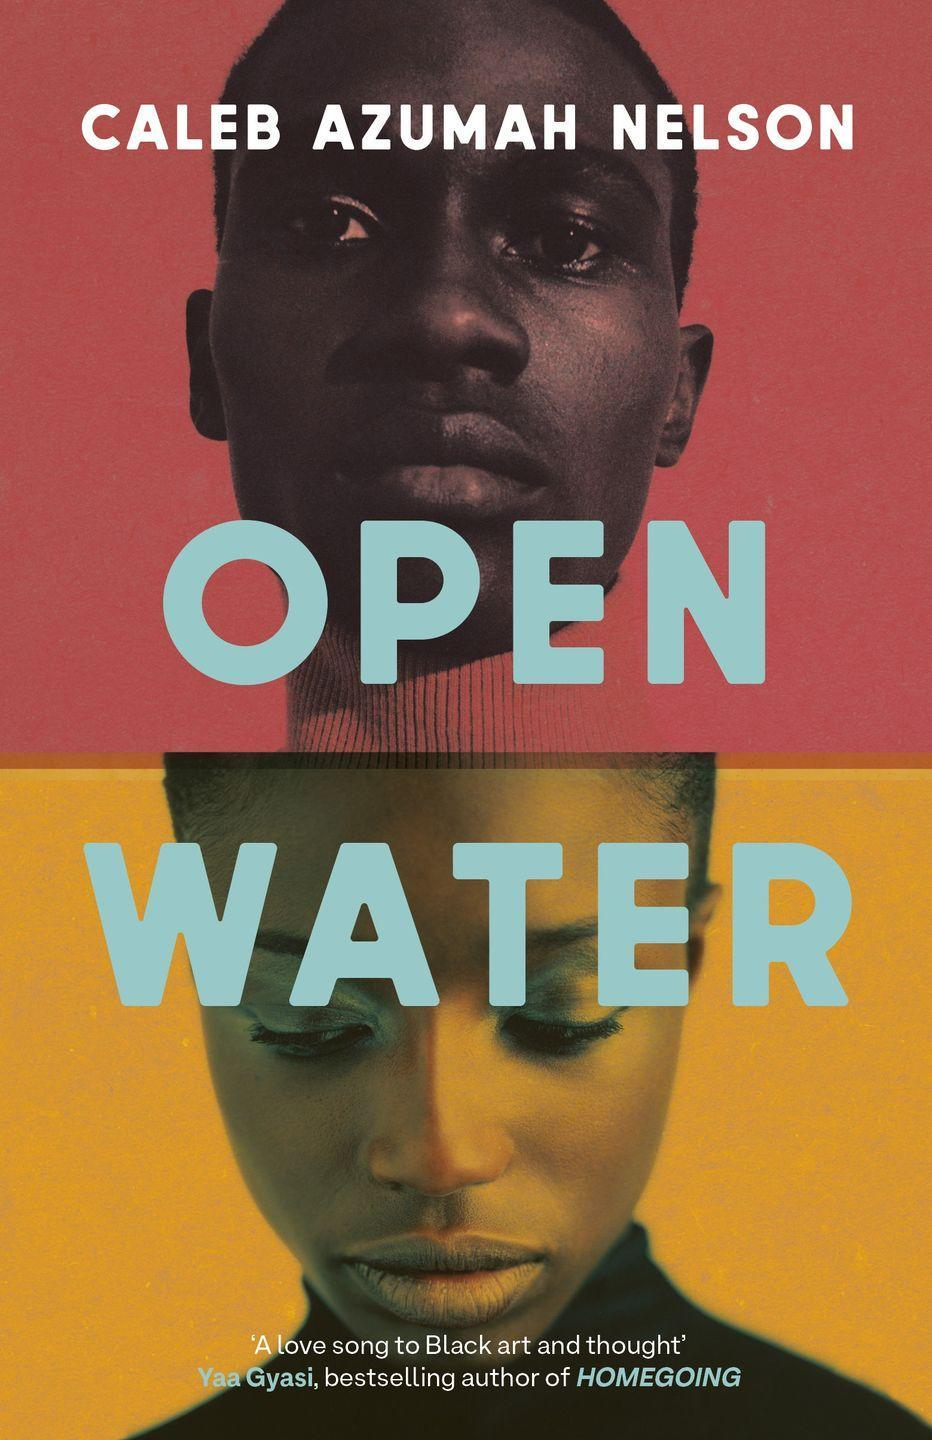 """<p>A beautiful debut novel from the multi-talented writer and photographer Caleb Azumah Nelson, who draws on his upbringing in Bellingham to create a poetic world that celebrates first love, Black identity and the messiness of youth. - Helena Lee</p><p><strong>Read Caleb Azumah Nelson's ode to South-East London in the <a href=""""https://magsdirect.co.uk/magazine/harpers-bazaar-uk-mar-21/"""" rel=""""nofollow noopener"""" target=""""_blank"""" data-ylk=""""slk:March 2021"""" class=""""link rapid-noclick-resp"""">March 2021 </a>issue</strong></p><p><a class=""""link rapid-noclick-resp"""" href=""""https://www.amazon.co.uk/Open-Water-Caleb-Azumah-Nelson/dp/0241448778/ref=sr_1_1?crid=3CFKICPLXRW04&dchild=1&keywords=open+water+caleb+azumah+nelson&qid=1616005339&sprefix=OPEN+WA%2Caps%2C164&sr=8-1&tag=hearstuk-yahoo-21&ascsubtag=%5Bartid%7C1927.g.35865085%5Bsrc%7Cyahoo-uk"""" rel=""""nofollow noopener"""" target=""""_blank"""" data-ylk=""""slk:SHOP NOW"""">SHOP NOW</a></p>"""